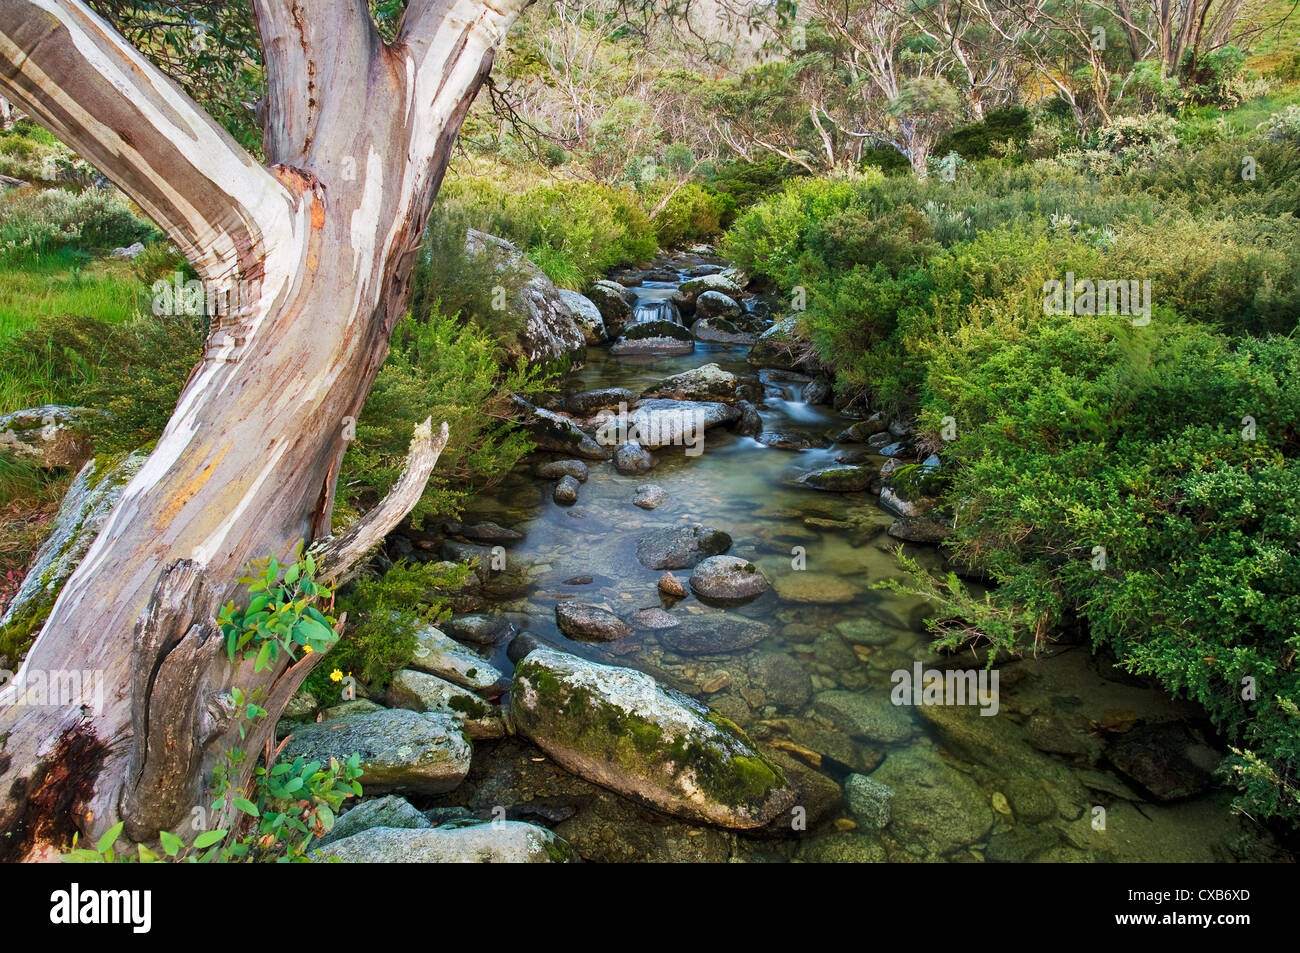 Snow Gum at a small creek in Dead Horse Gap. - Stock Image